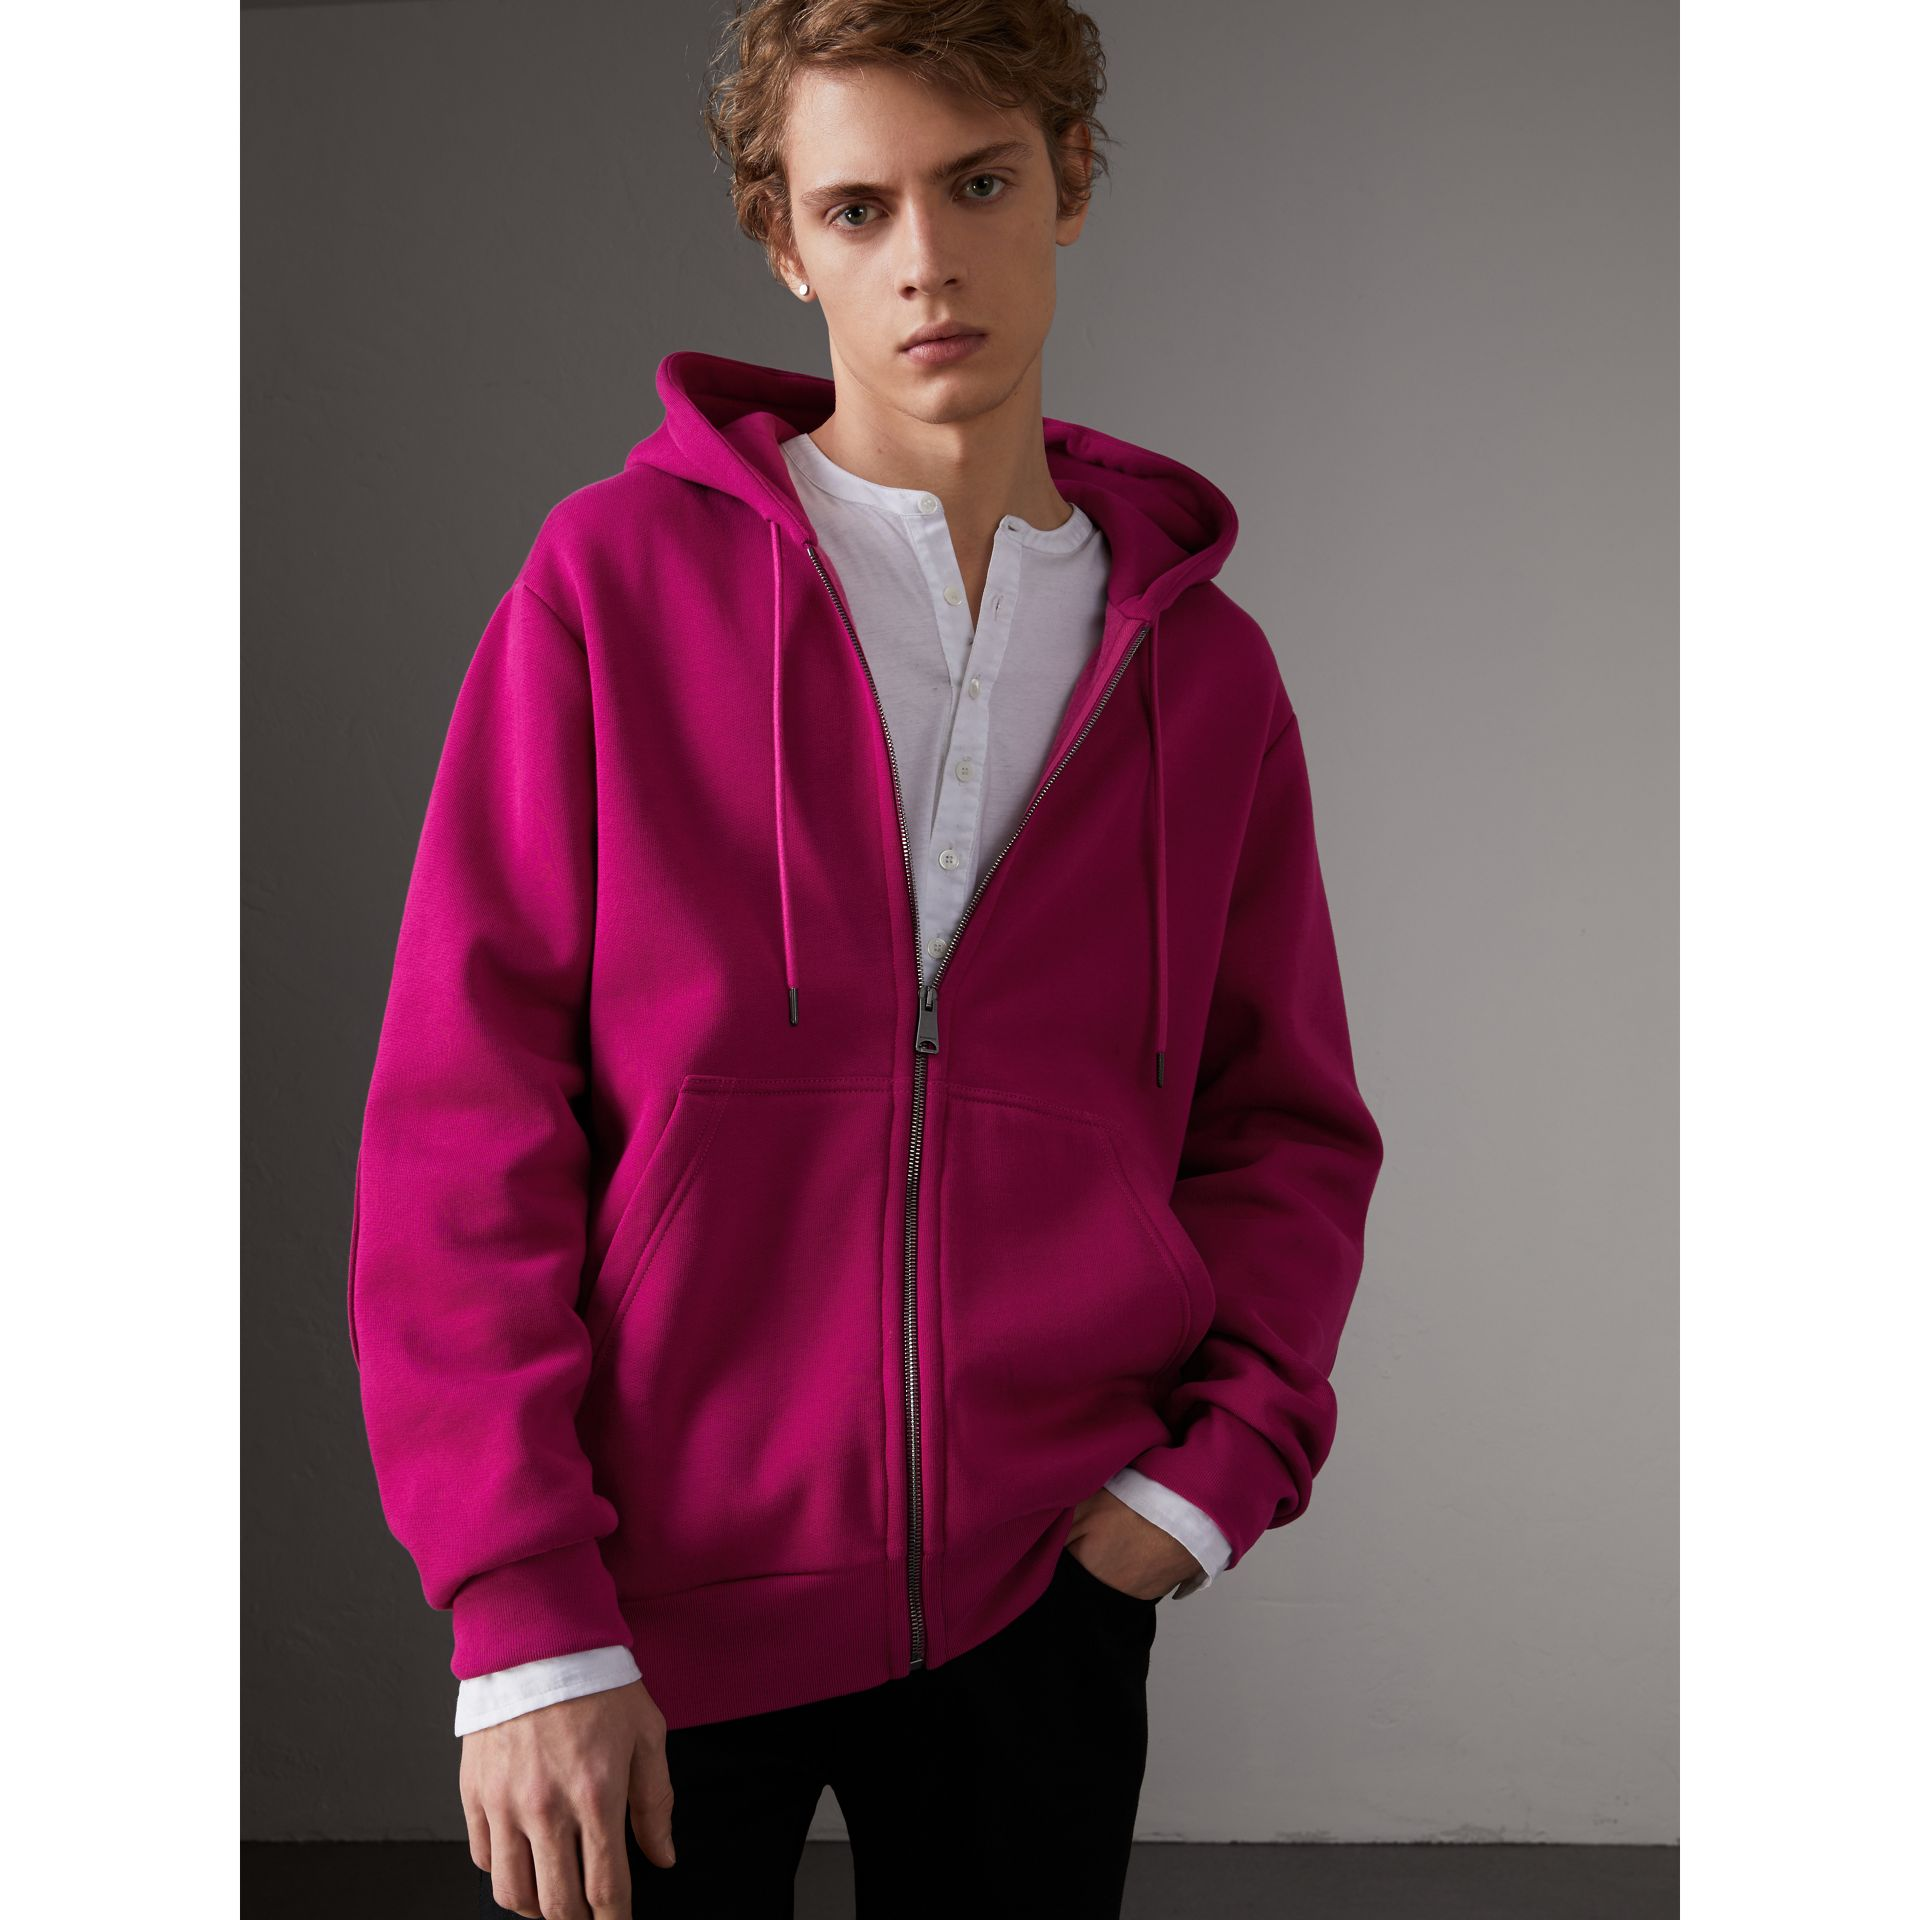 Cotton Jersey Zip-front Hooded Top in Bright Fuchsia - Men | Burberry United Kingdom - gallery image 0